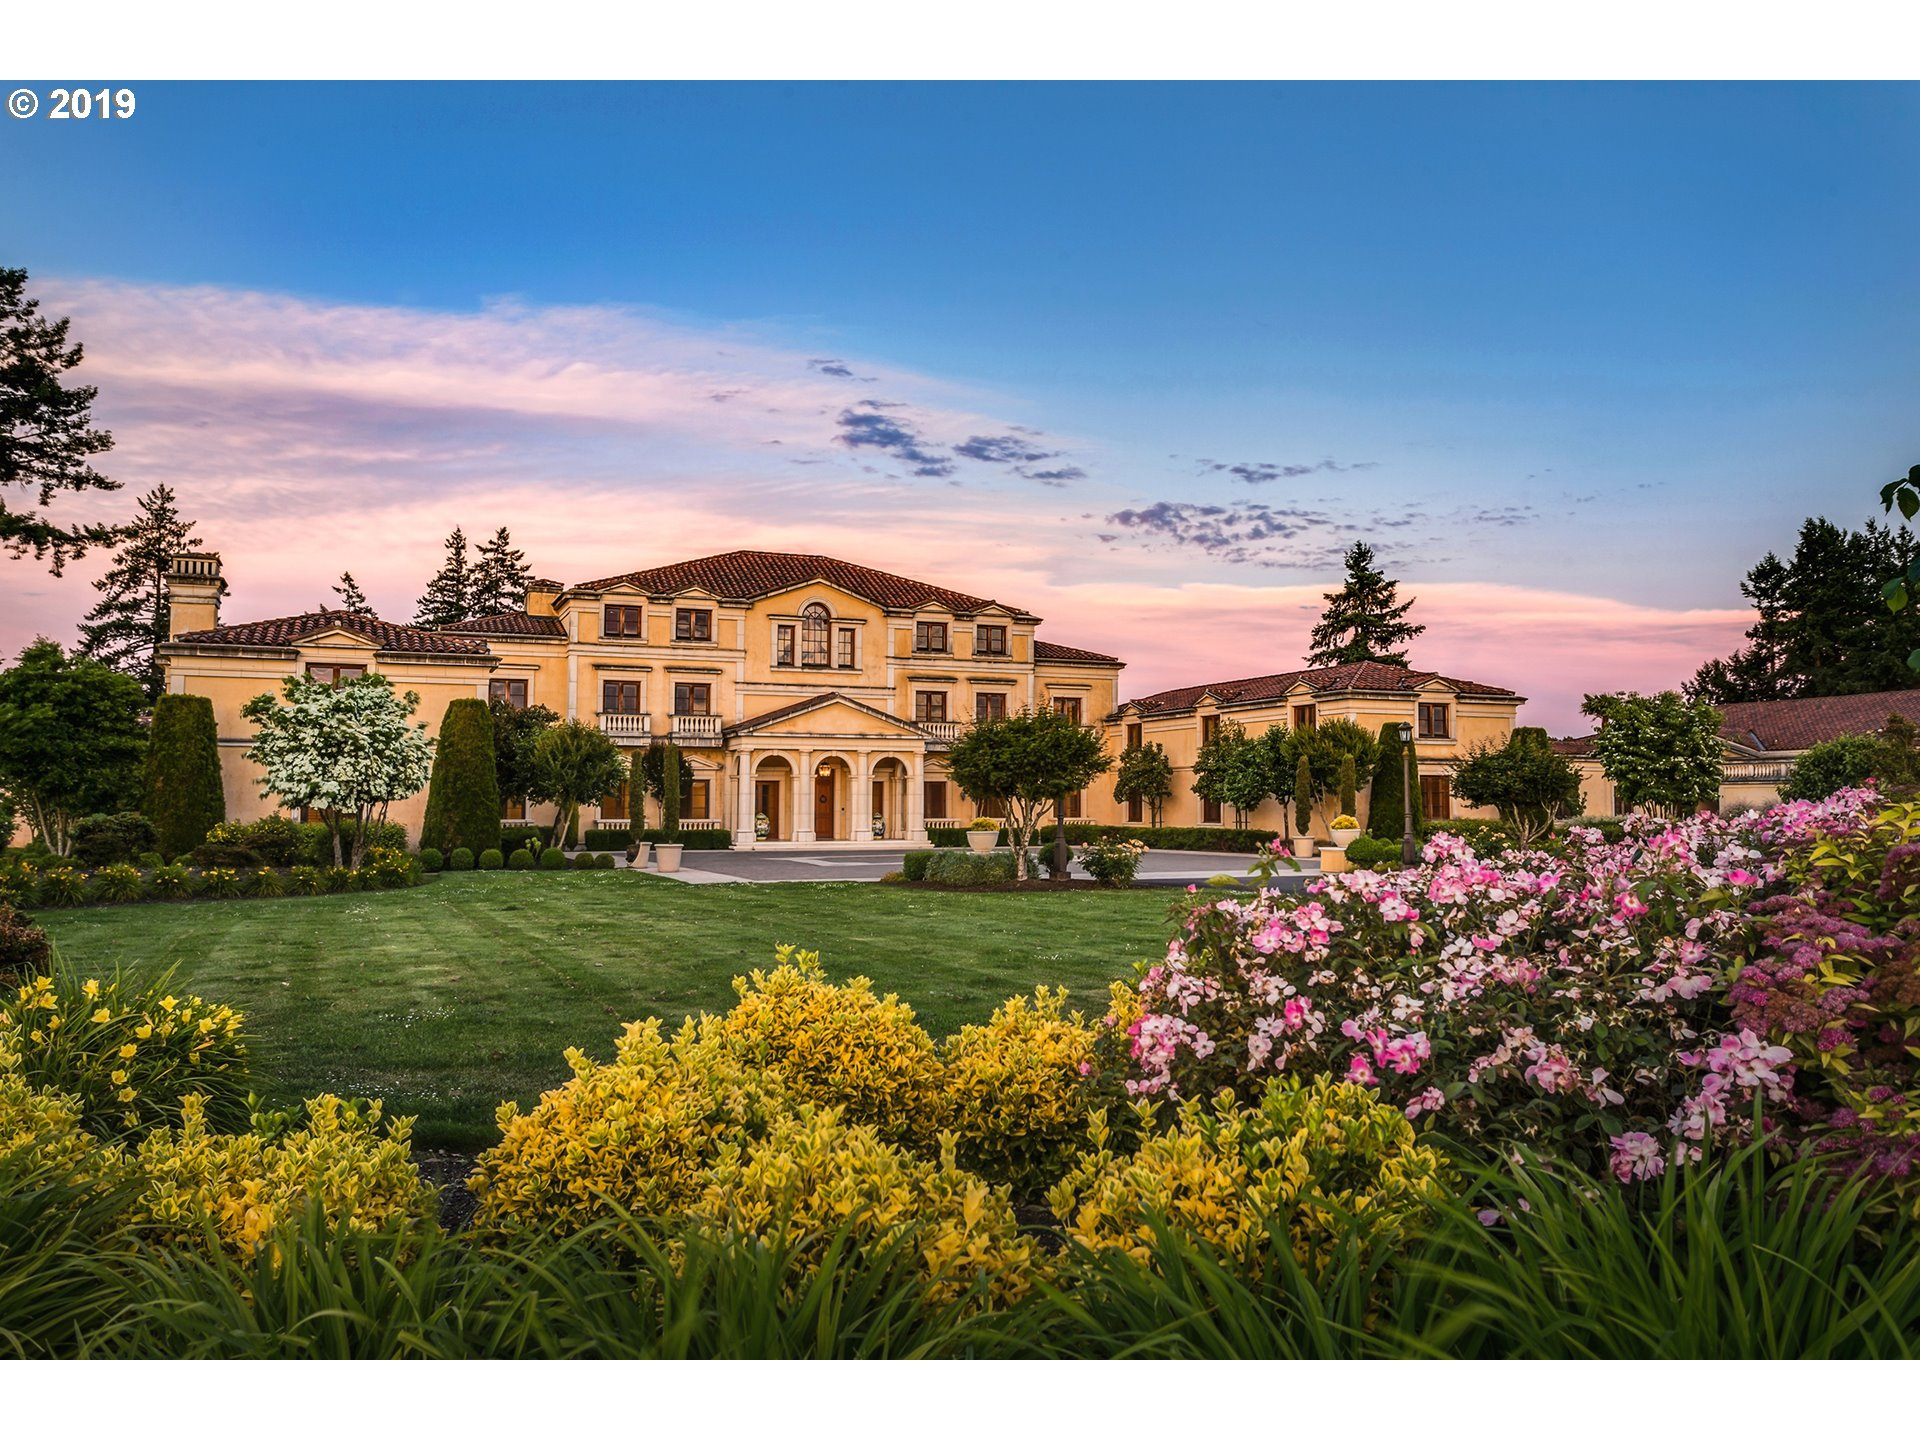 Worldbid Auction - Trust Sale  This former Del Smith Estate, the founder of Evergreen Aviation to be sold to highest bidder at or above opening bid list price. Built at a cost of nearly $18,000,000.  Bids accepted today thru August 21, 2019 at Noon PST, the auction date. Add 4% Buyer premium. Property may be sold anytime prior to auction date. Pre-Auction offers accepted with contingencies to be removed by 12PM, 8/19/19.